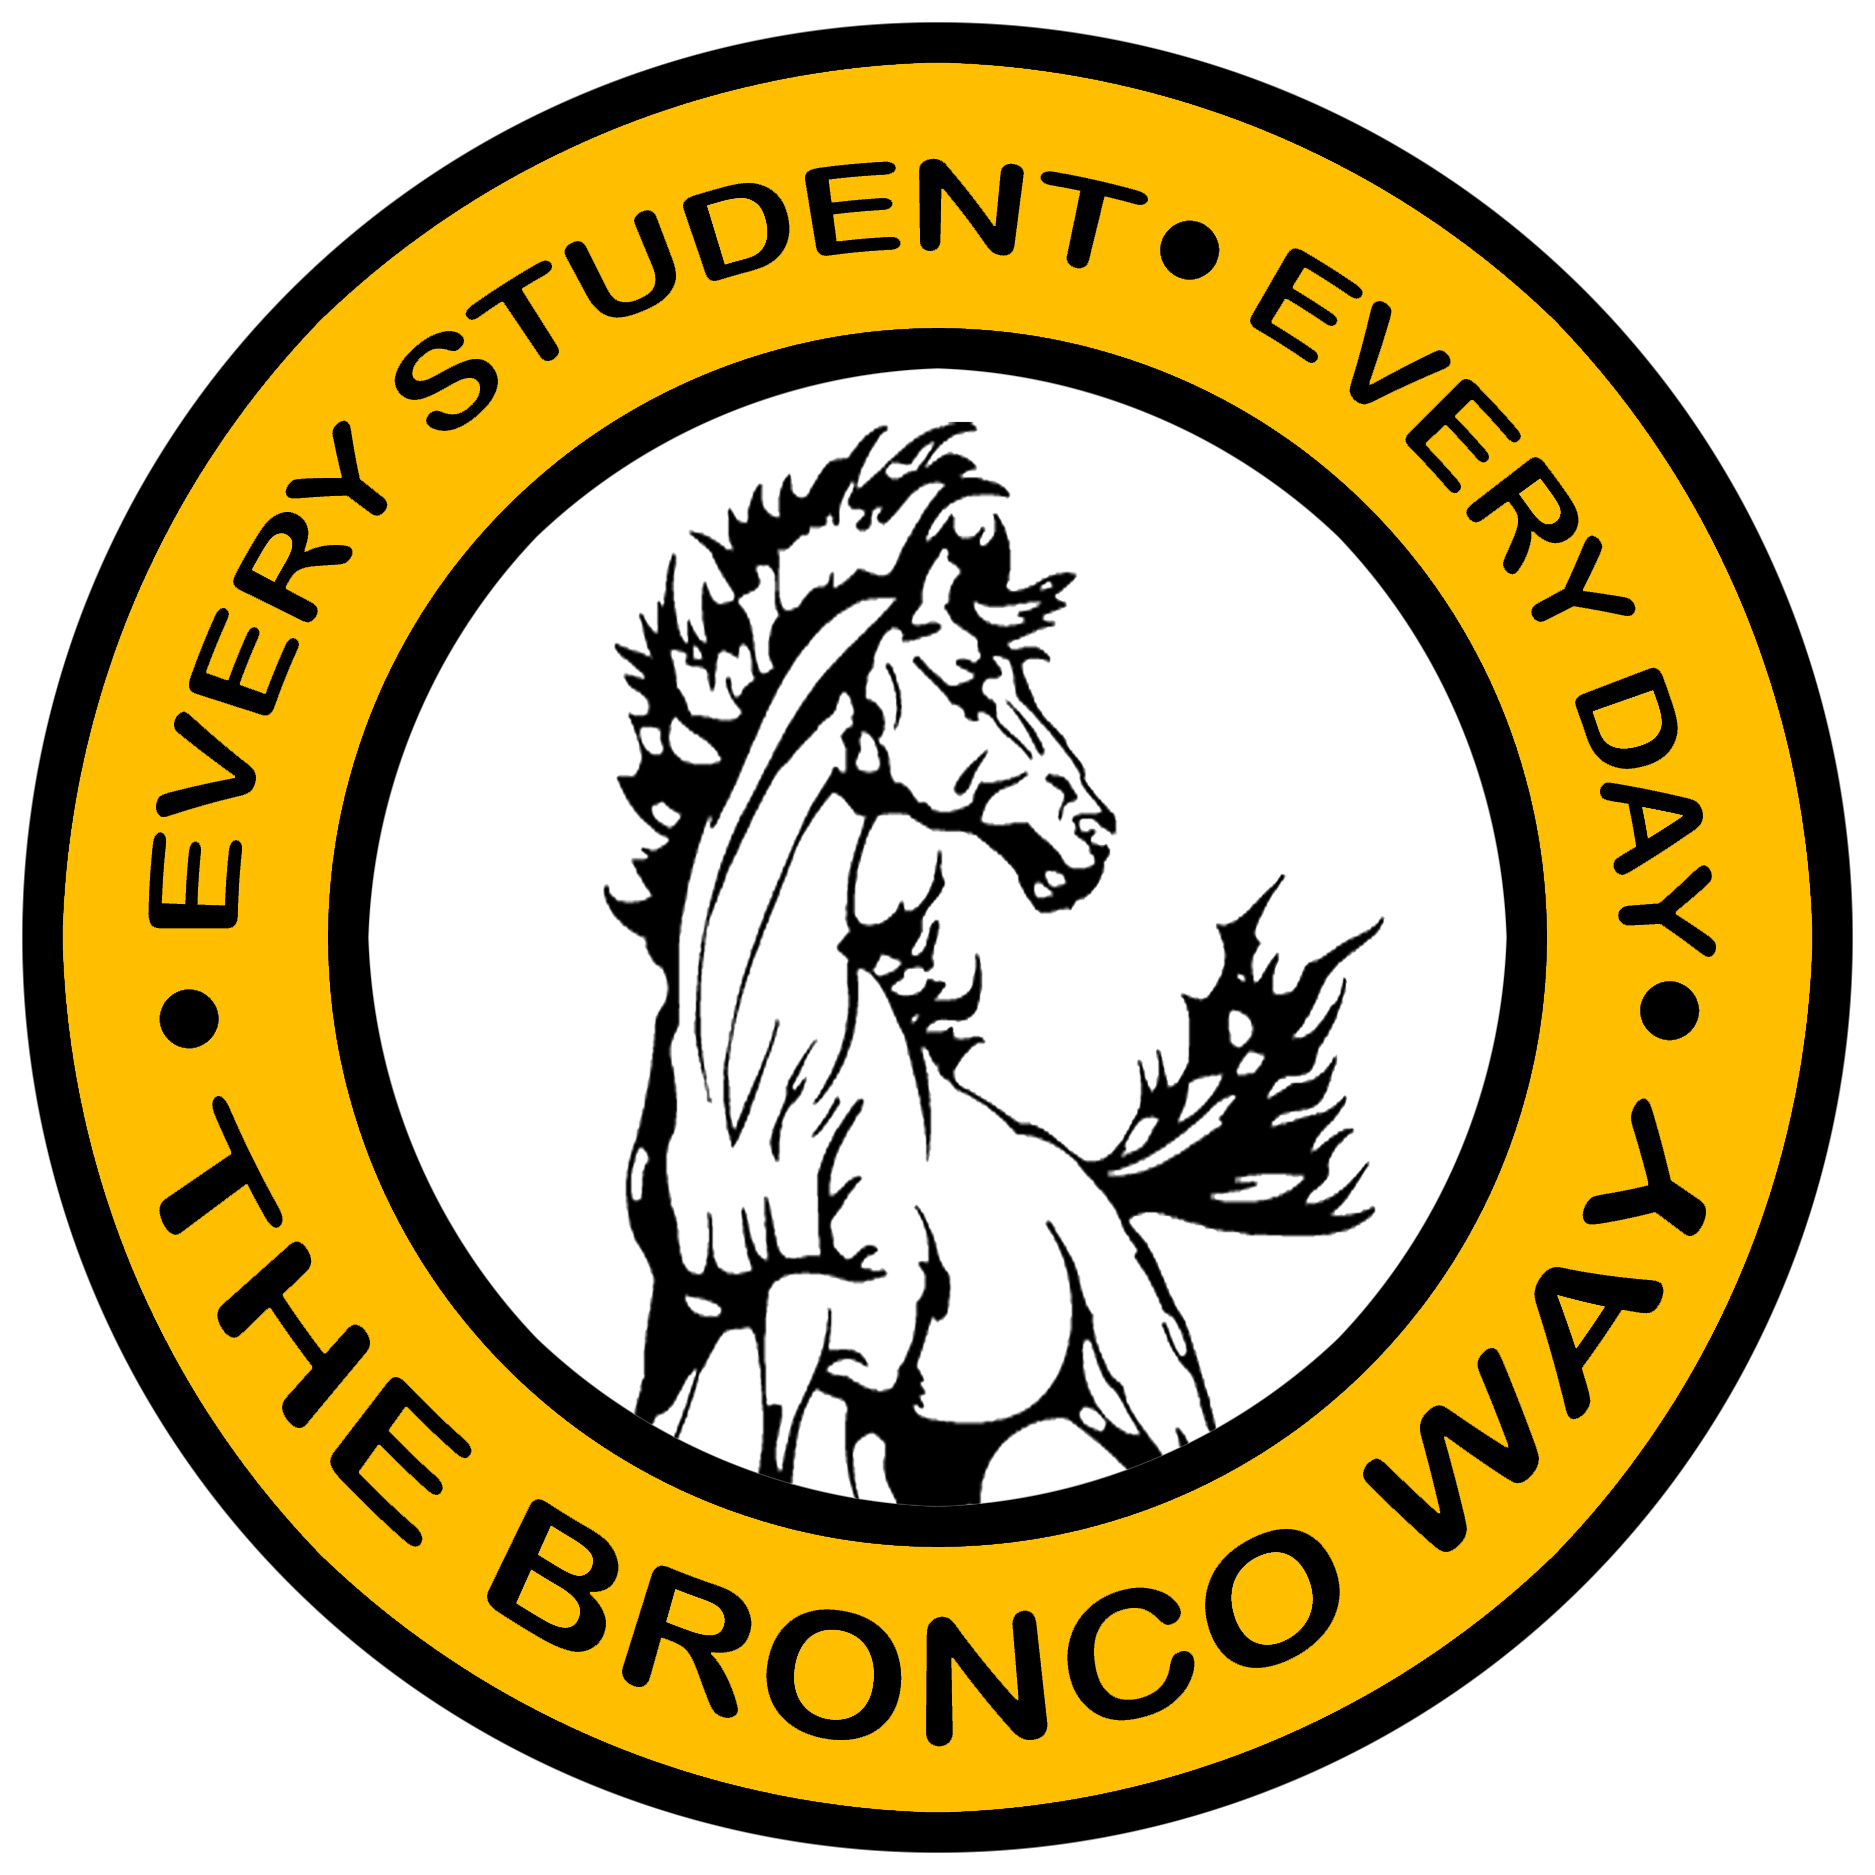 The Bronco Way